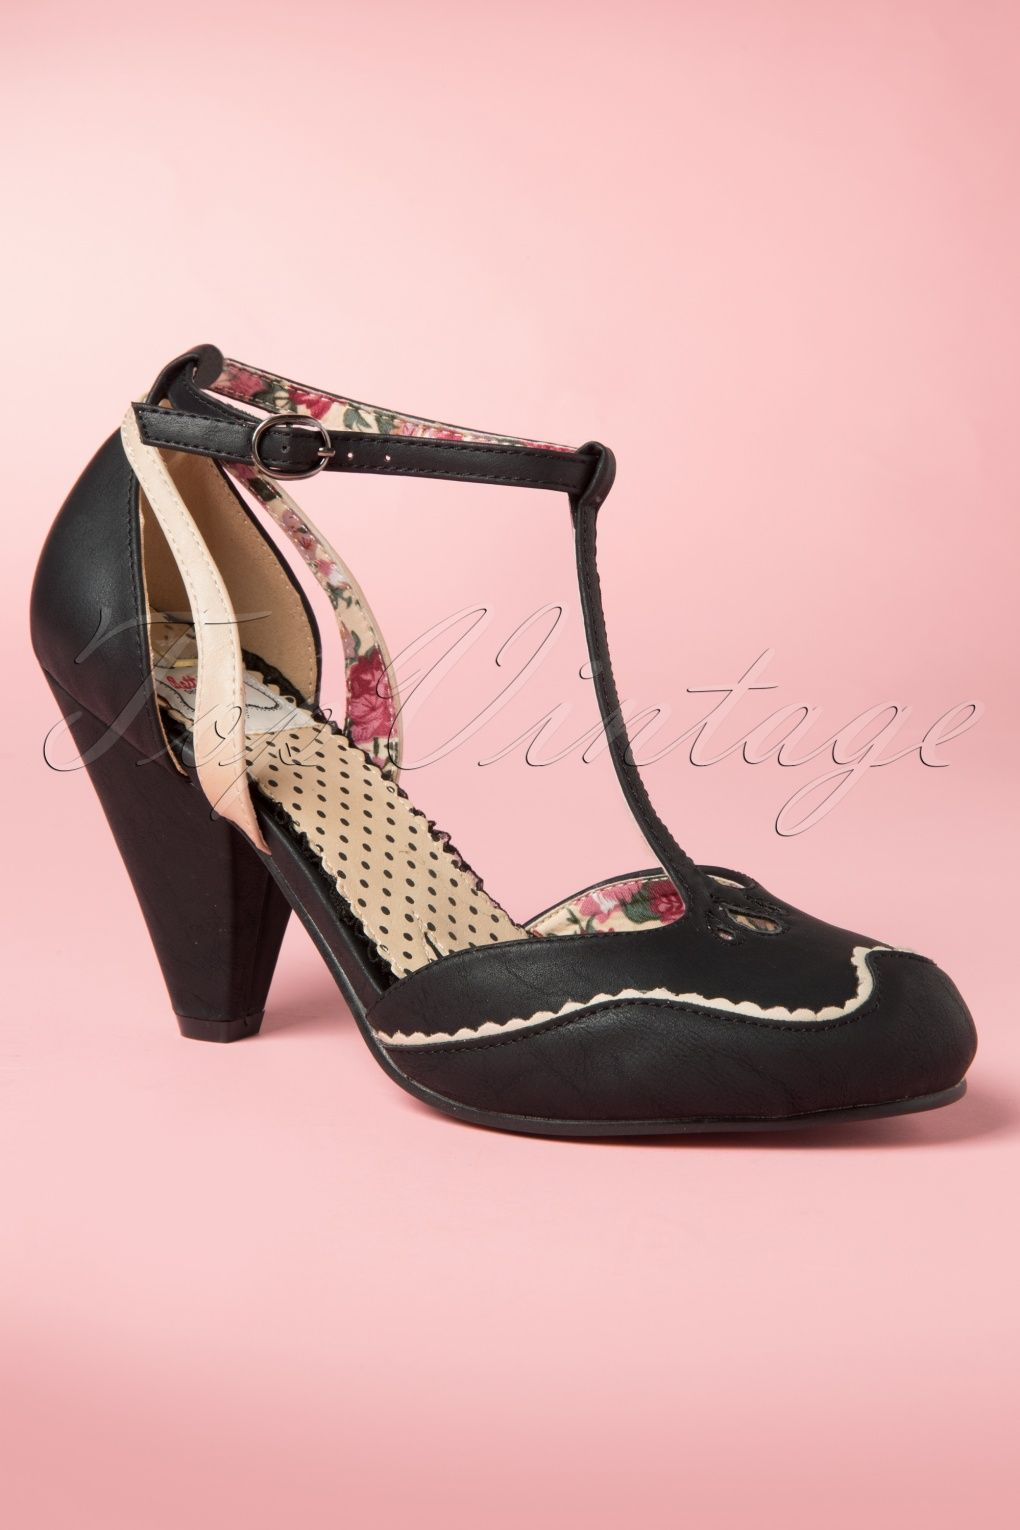 Mee Shoes Damen suuml;szlig; Schleife Lackleder Kitten heel Niedrig Pumps